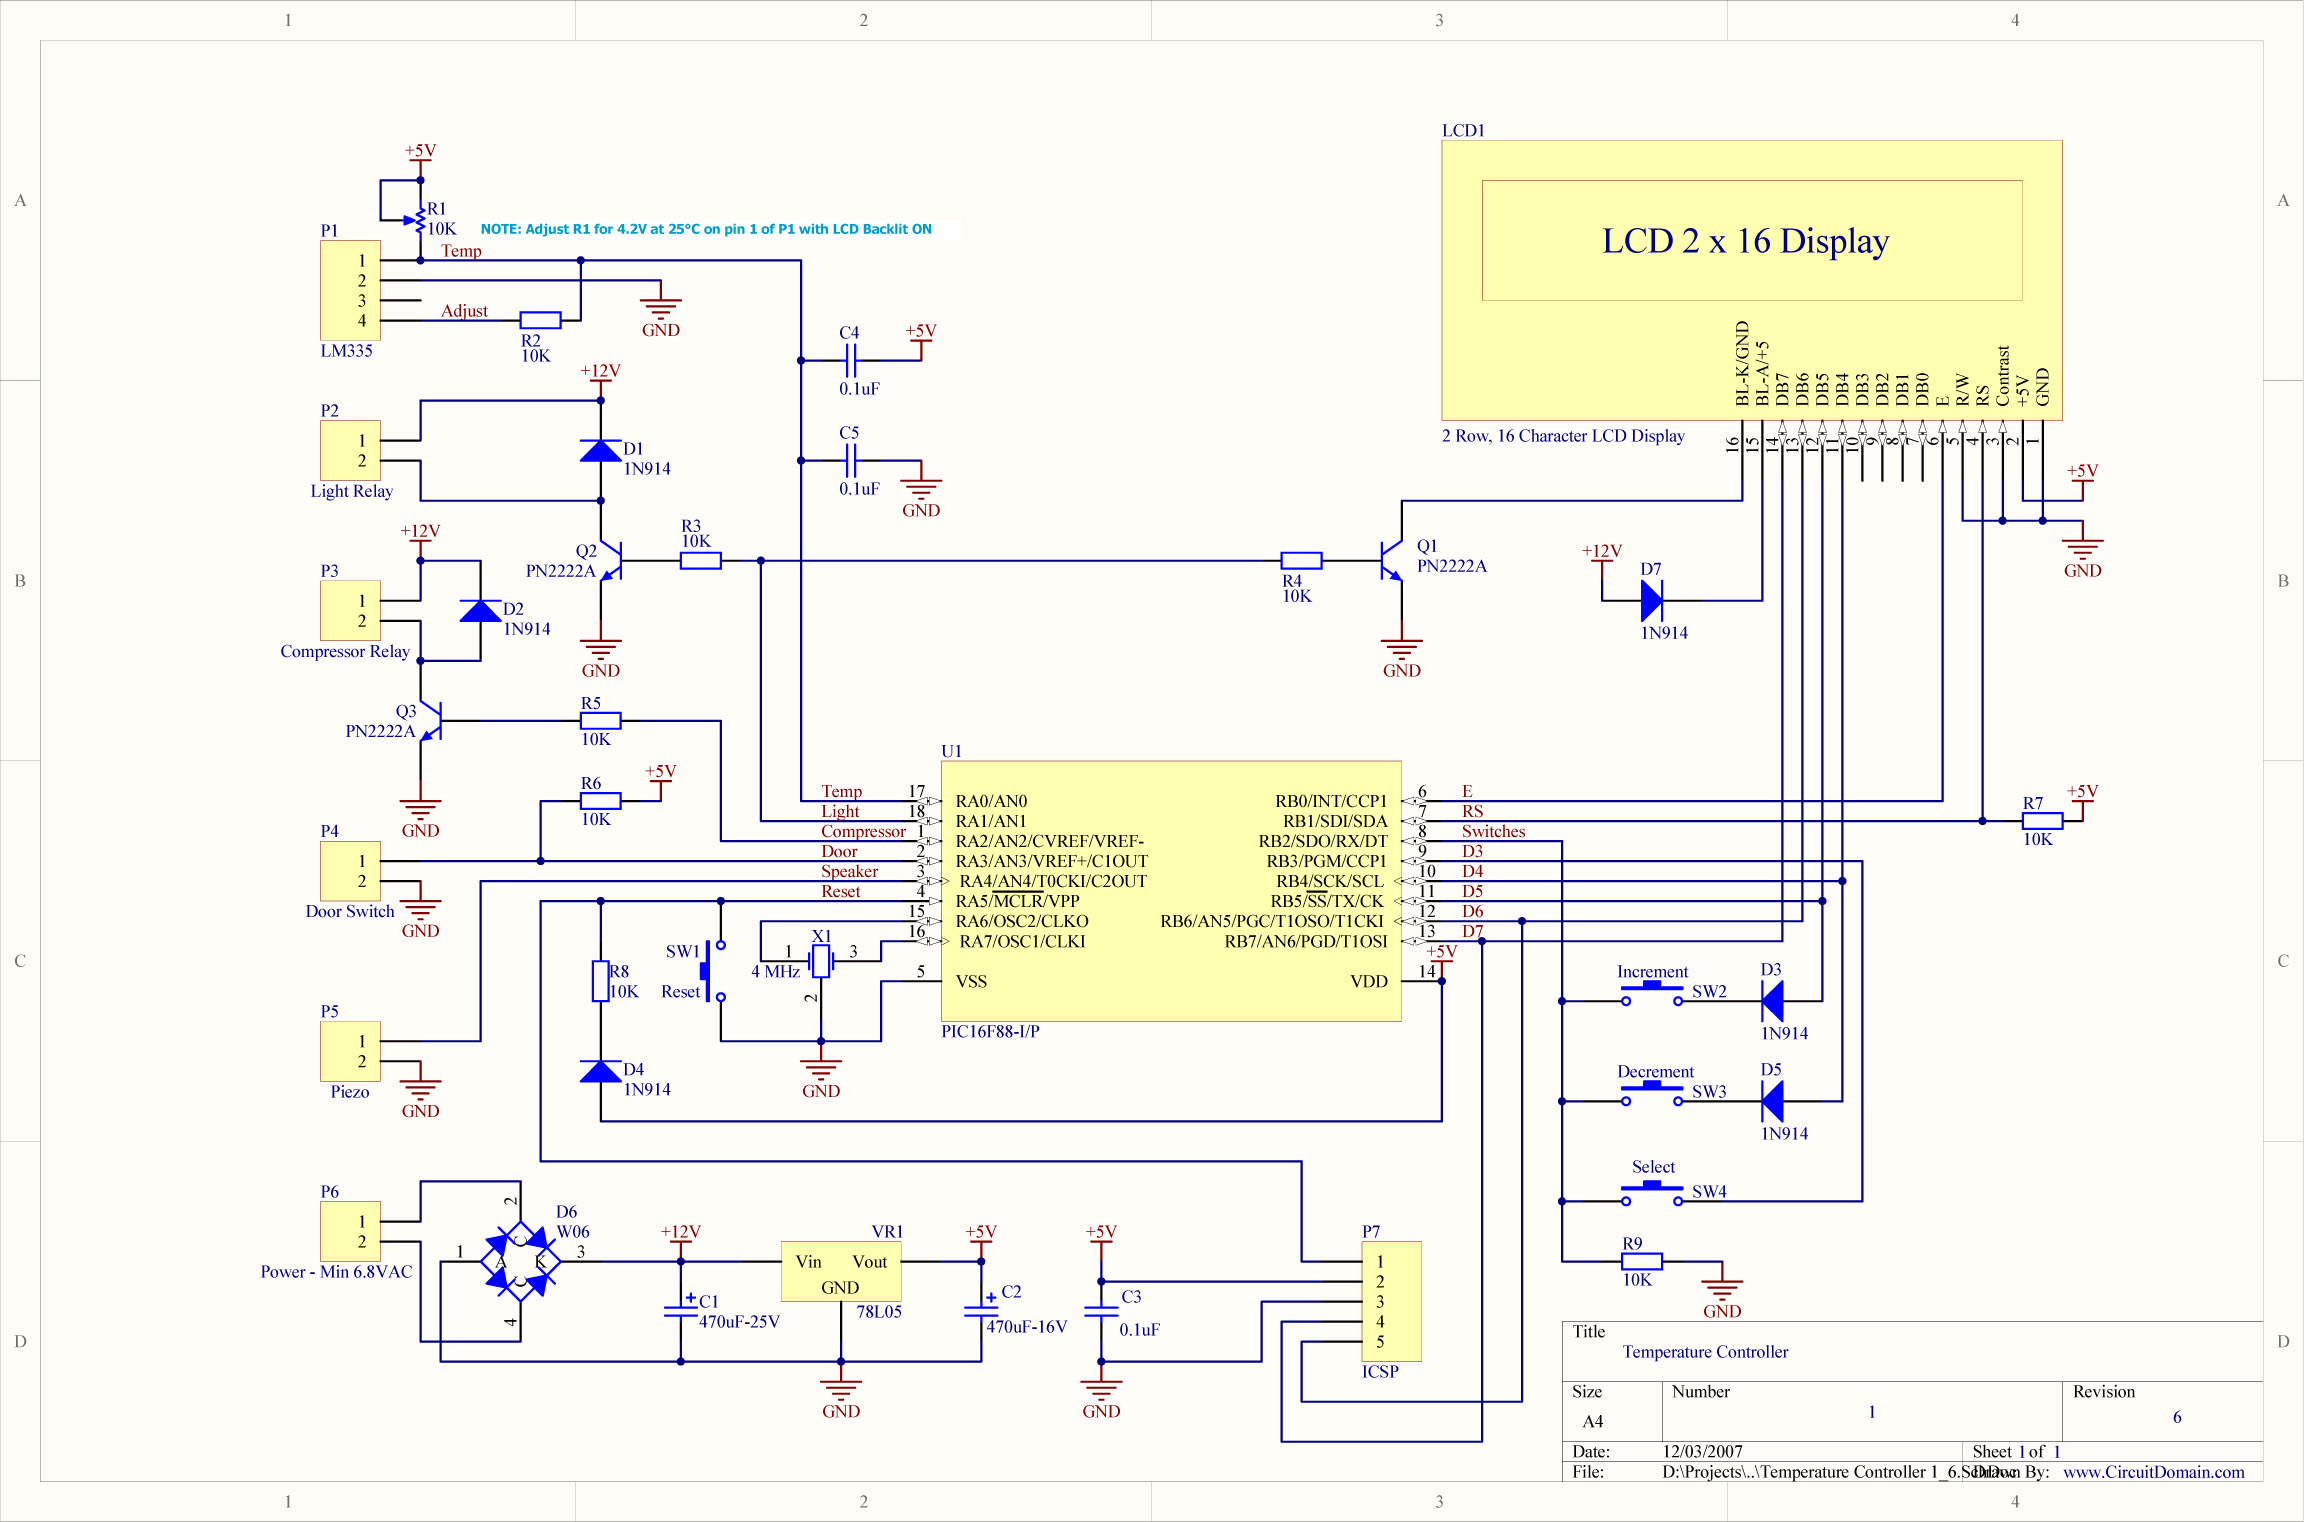 Temperature Controller Wiring besides Digital Temperature Controller #0303C8